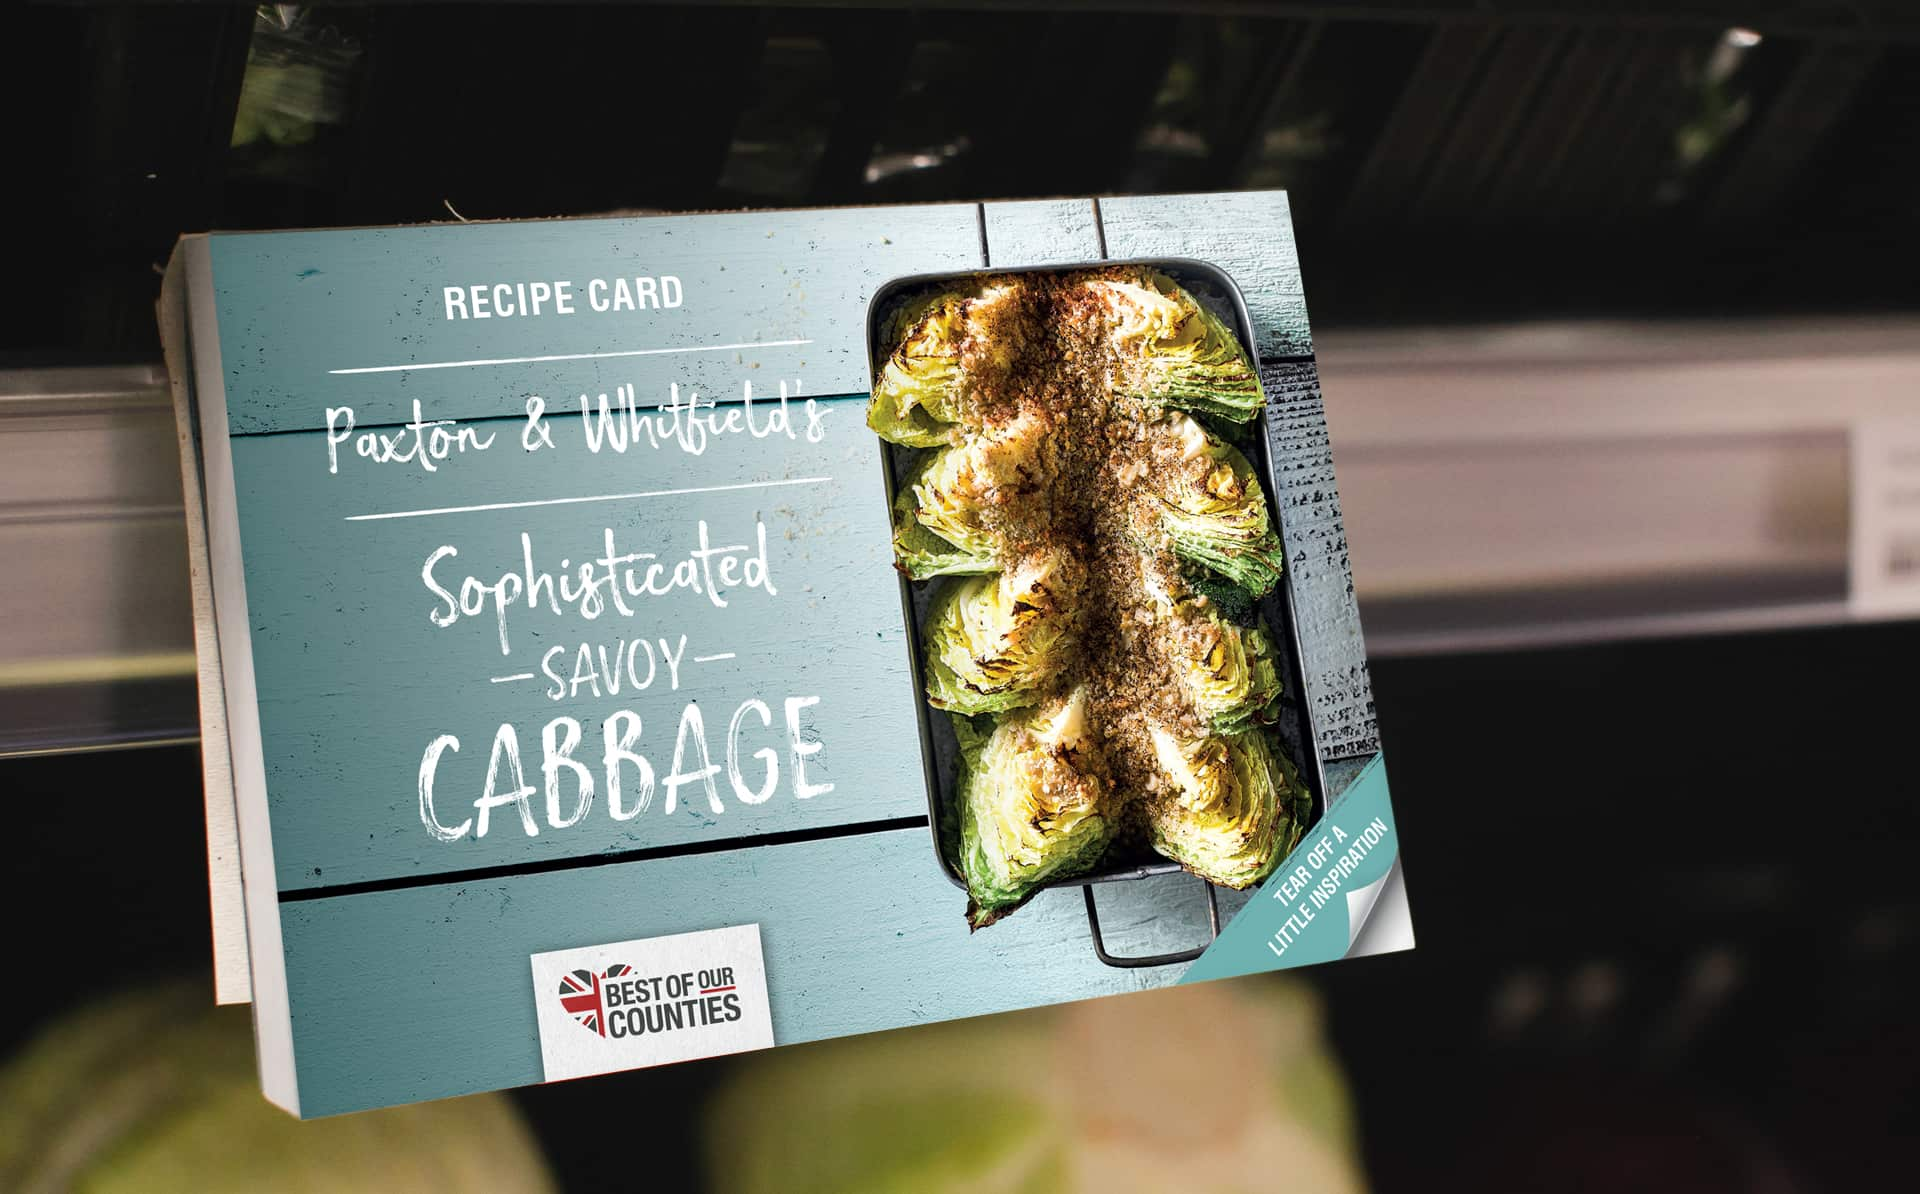 Retail trends: savoy cabbage tear-off POS (Point of sale) materials in retail marketing